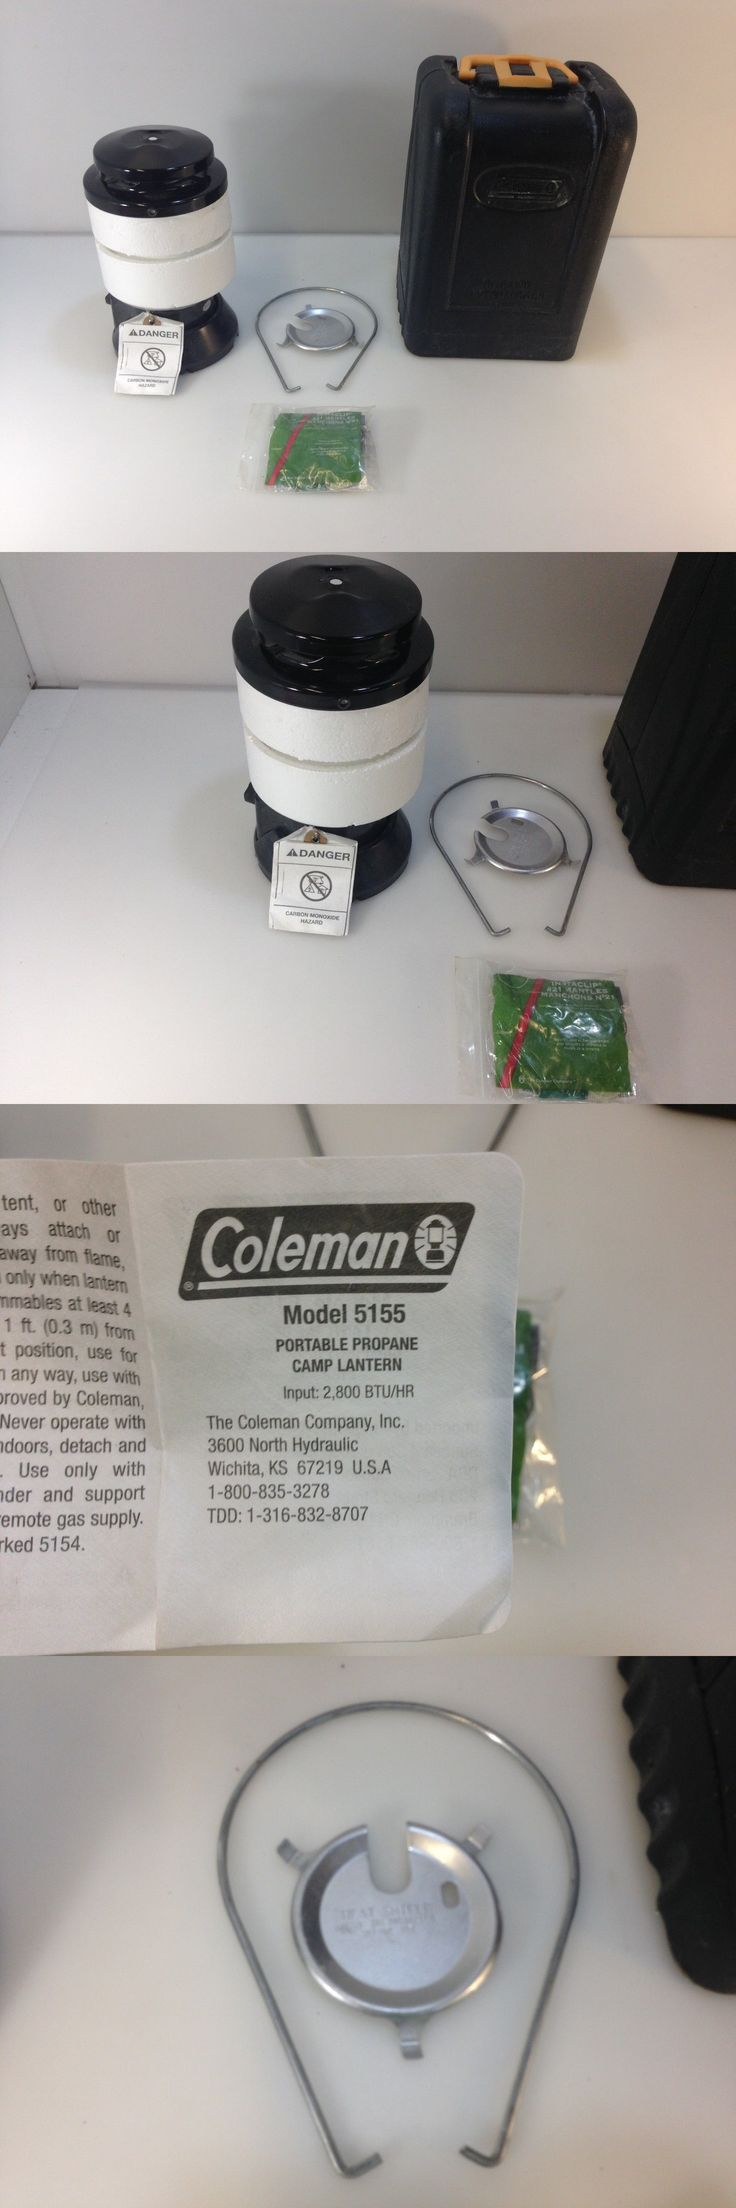 Lanterns 168867: Coleman Propane Lantern Model 5155 With Hard Plastic Case -> BUY IT NOW ONLY: $34.19 on eBay!